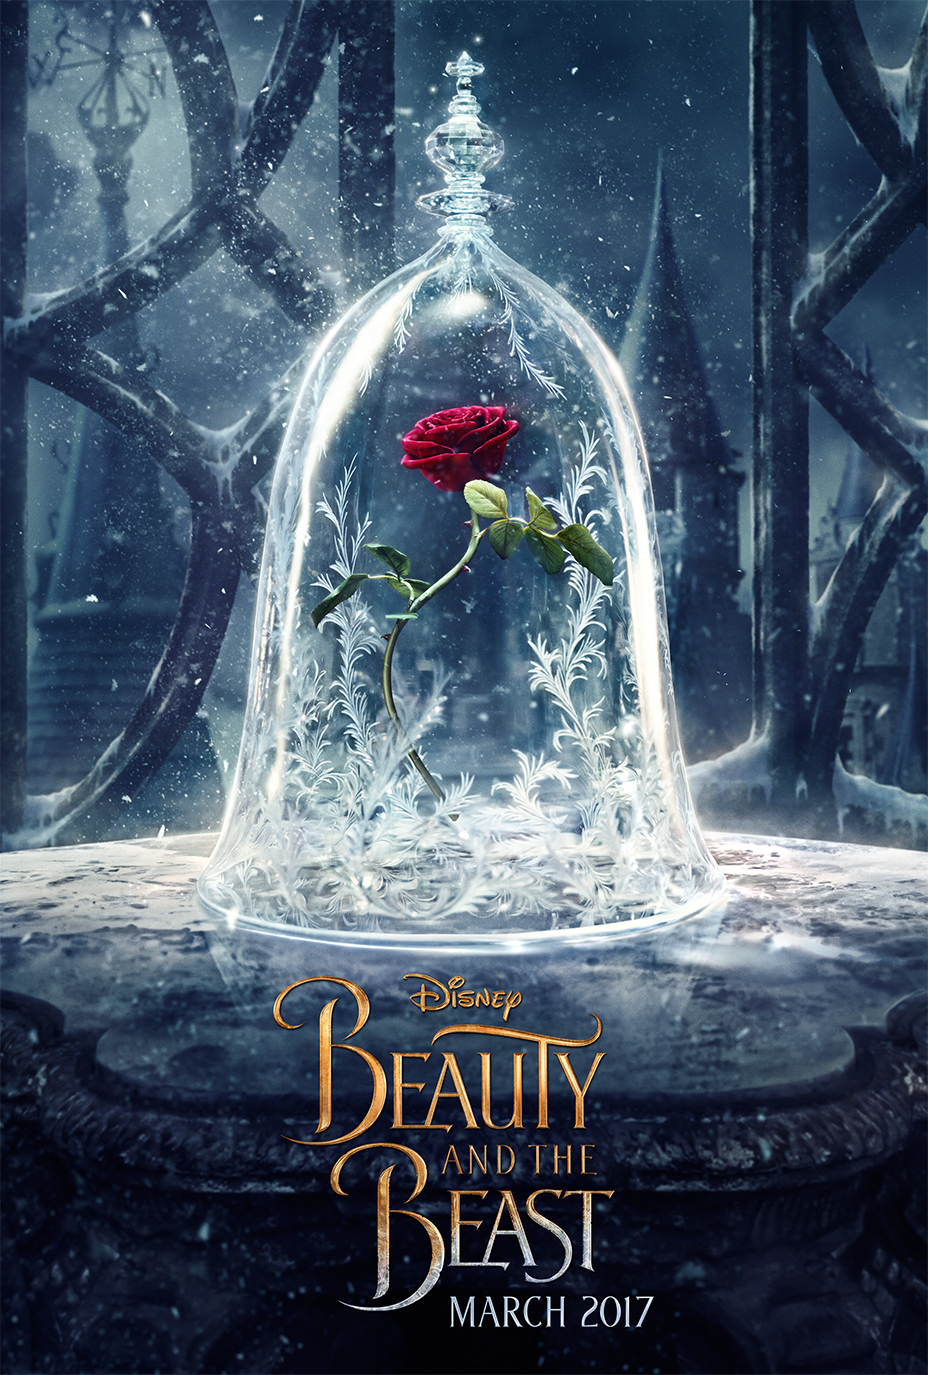 Disney Releases 'Beauty and the Beast' Poster With Iconic Enchanted Rose